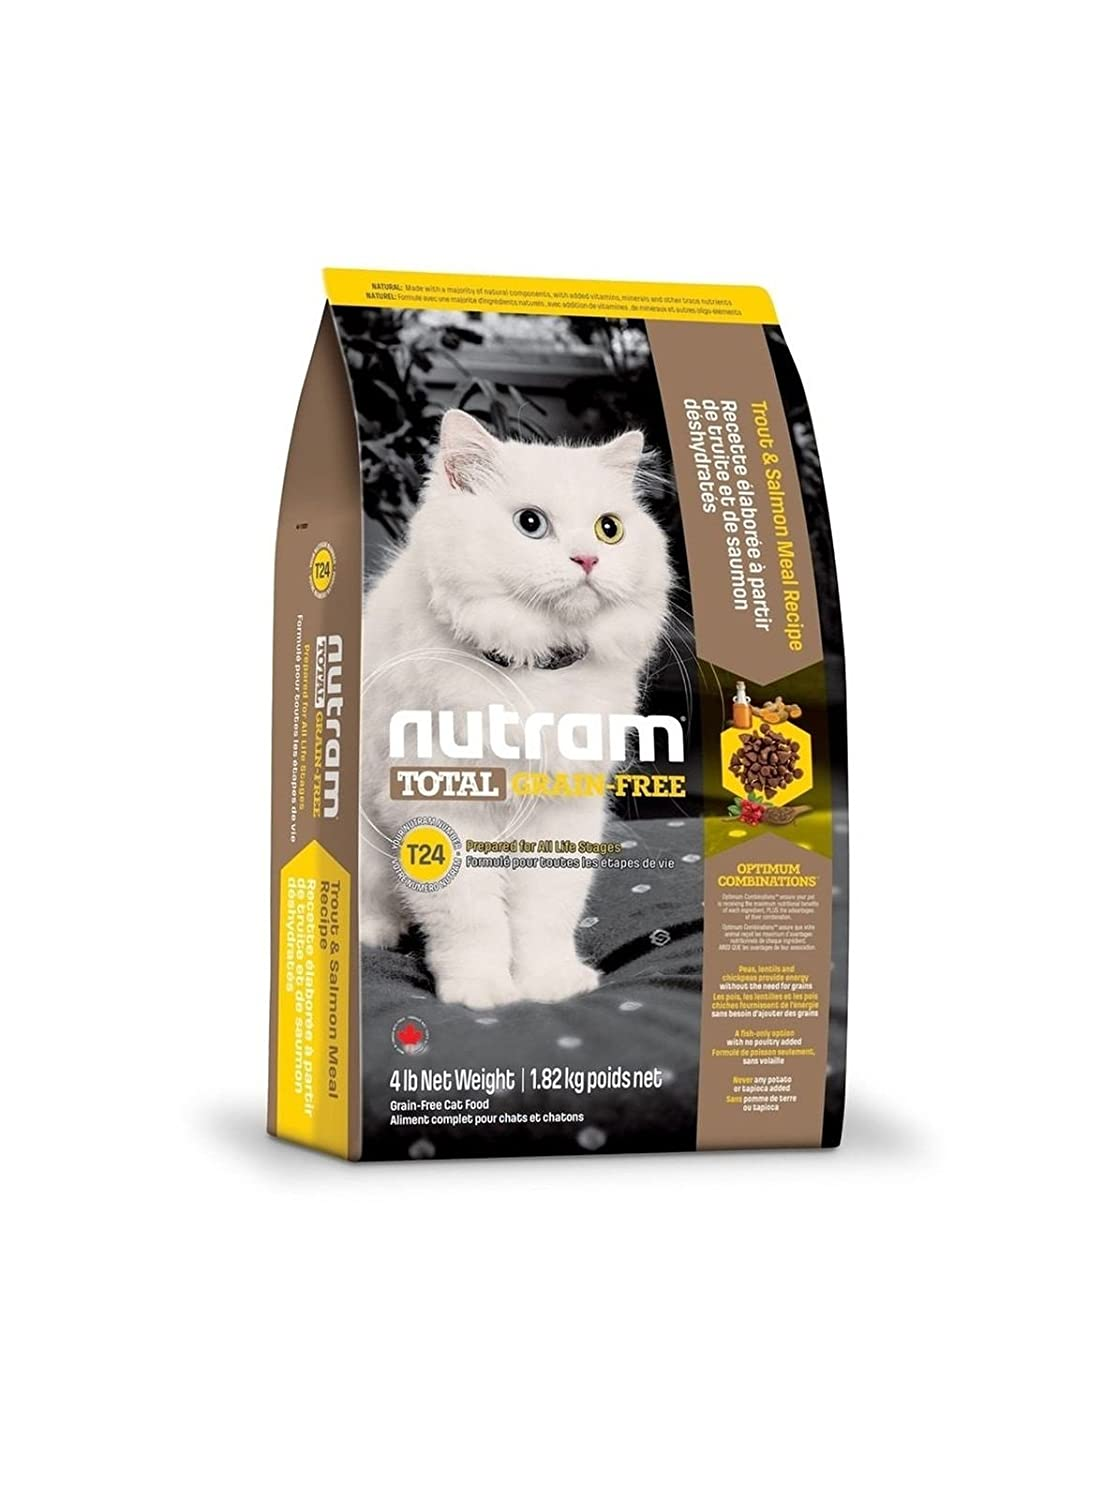 Nutram Complete Dry Grain Free Cat and Kitten Food Salmon and Trout, 6.8 kg